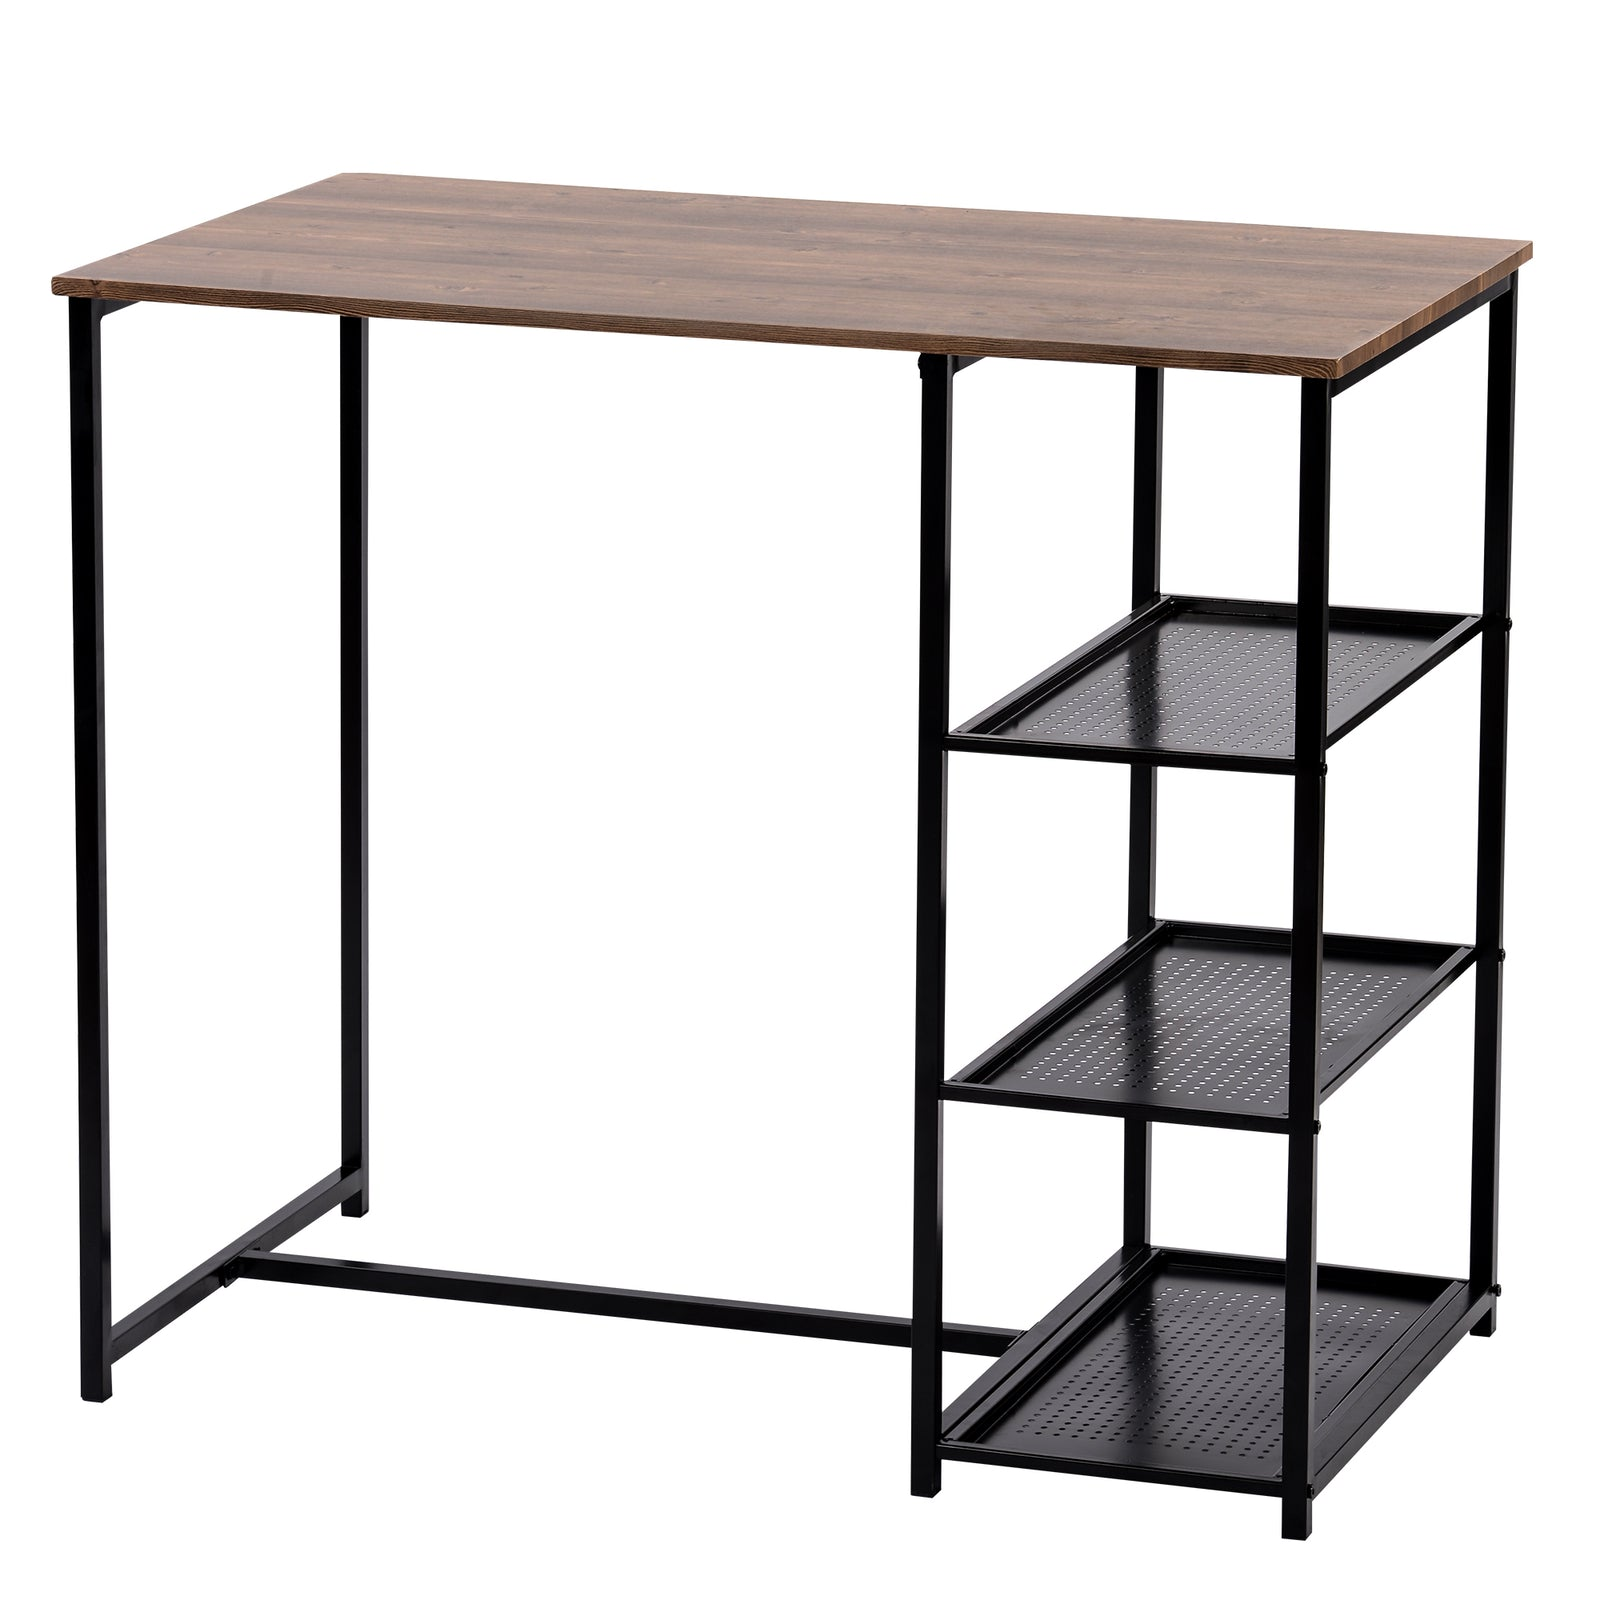 3 Counts - Modern Pub Set with Rectangular Table and Bar Stools - Black Table